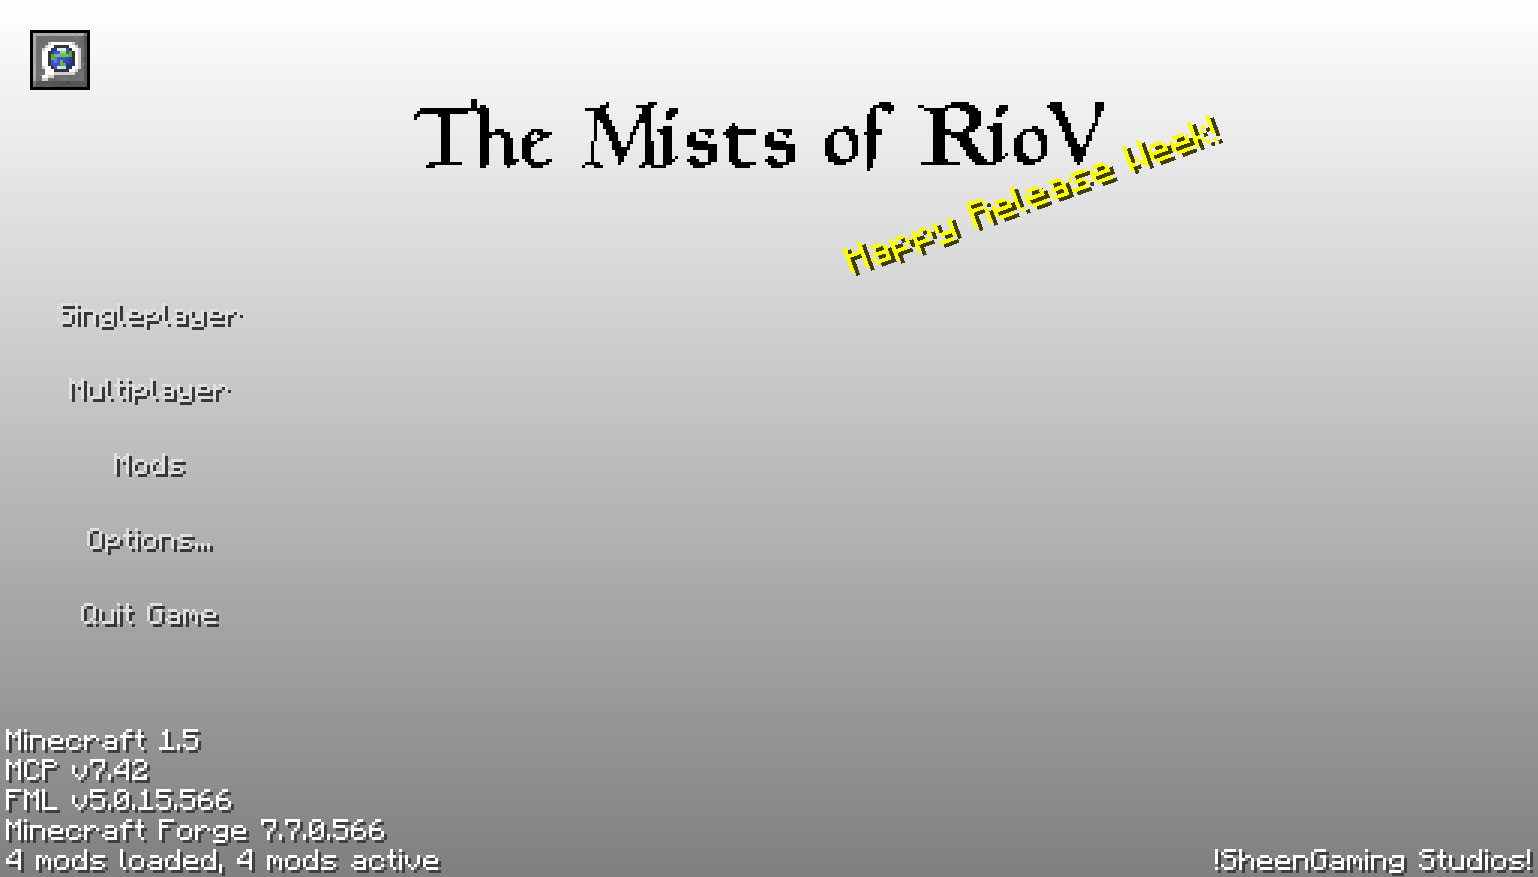 http://minecraft-forum.net/wp-content/uploads/2013/03/efd9f__The-Mists-of-RioV-Mod-5.jpg